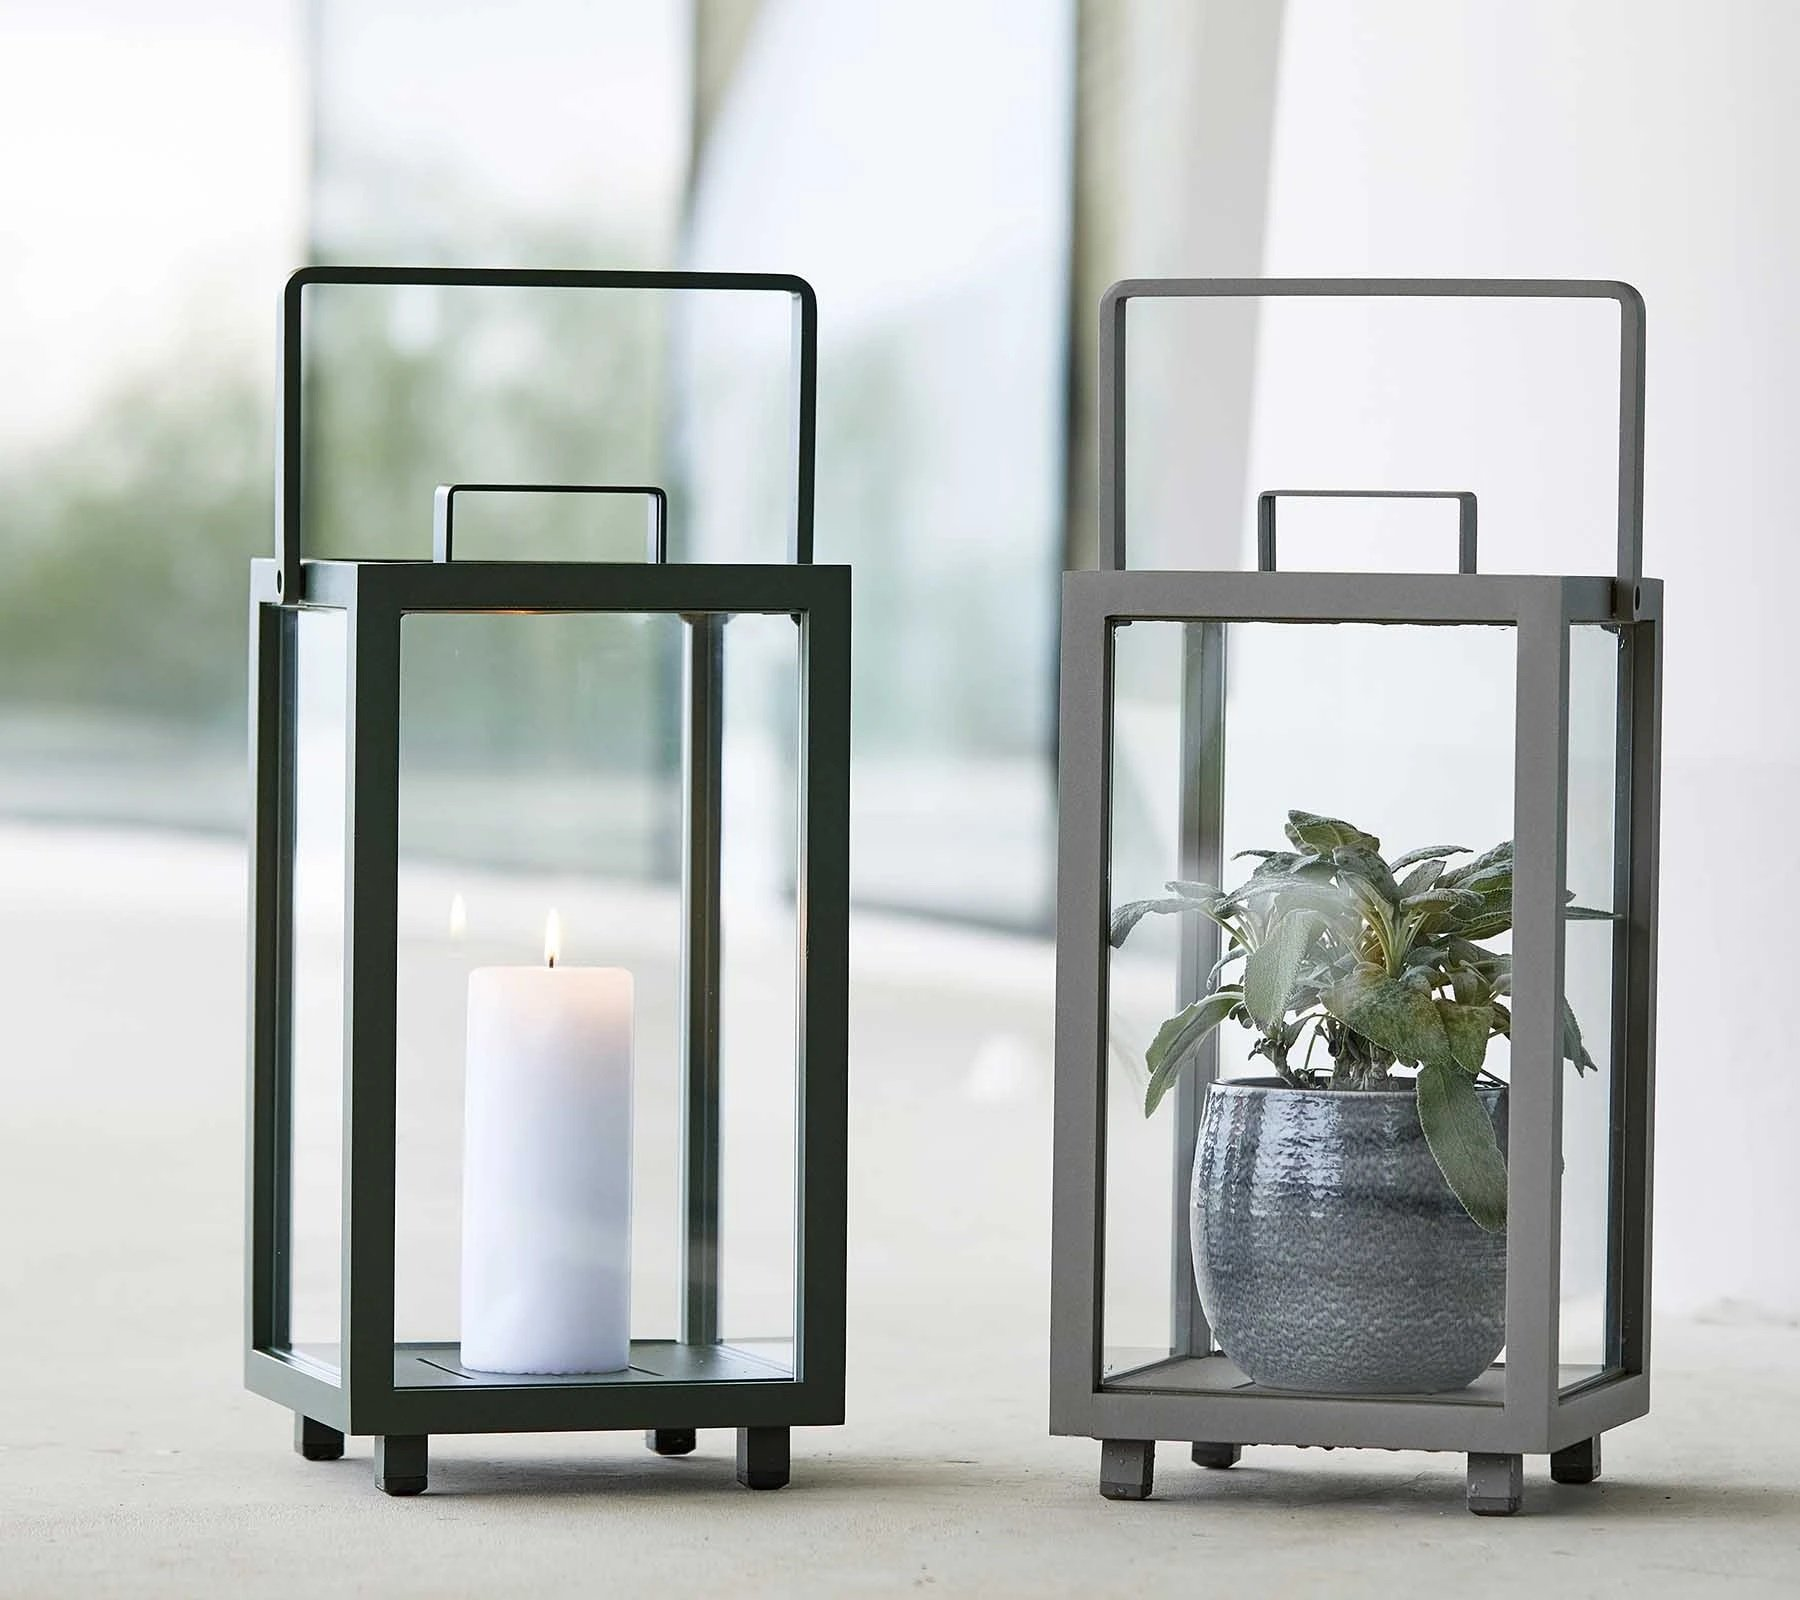 Lighthouse Lantern lighting from Cane-line, designed by Cane-line Design Team